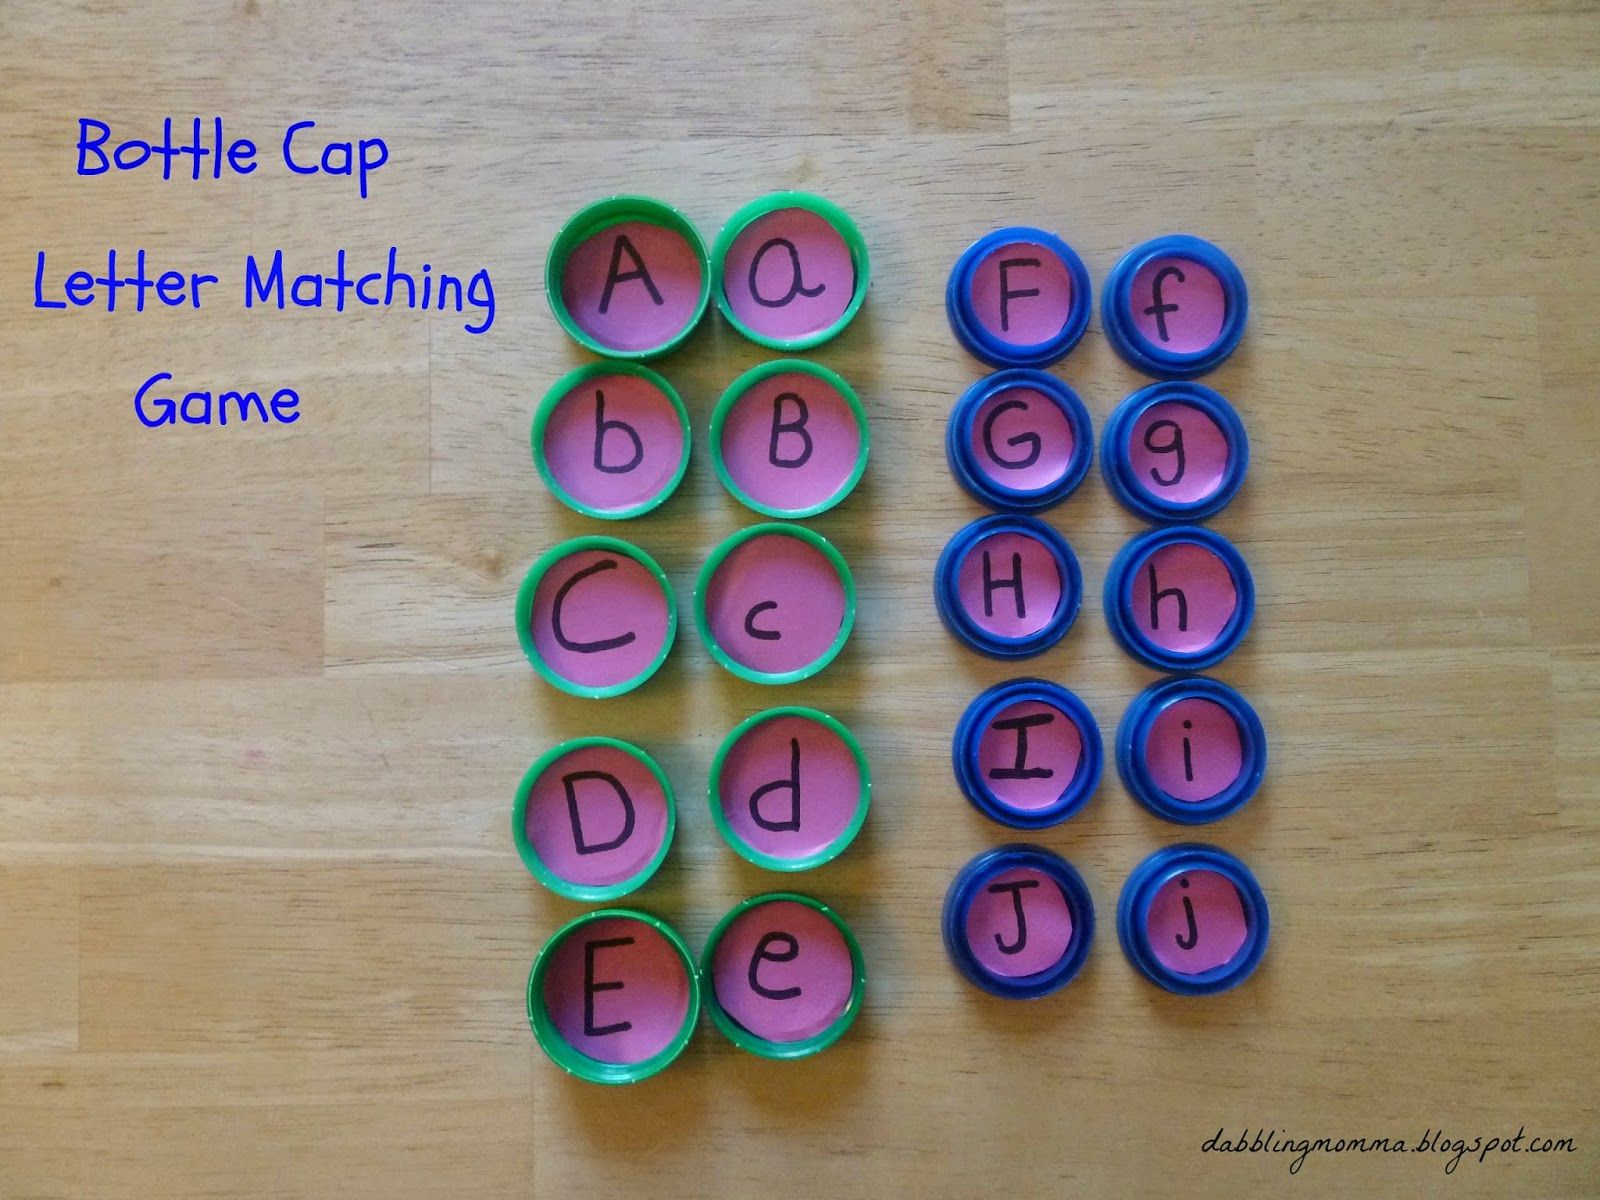 Dabblingmomma Bottle Cap Letter Matching And Memory Game